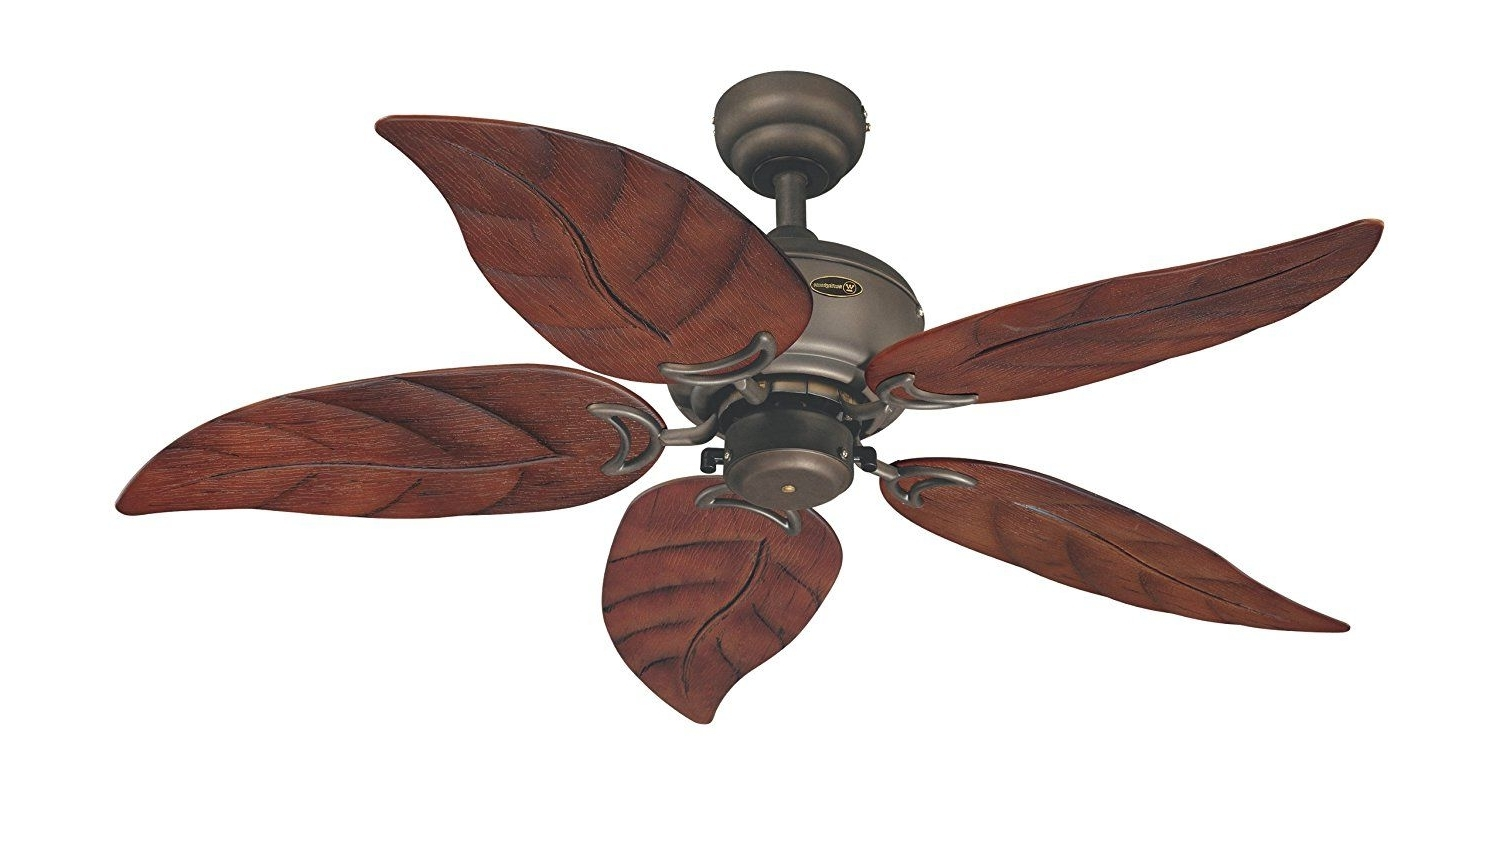 48 Inch Outdoor Ceiling Fans With Light With Preferred Westinghouse 7861920 Oasis Single Light 48 Inch Five Blade Indoor (View 6 of 20)